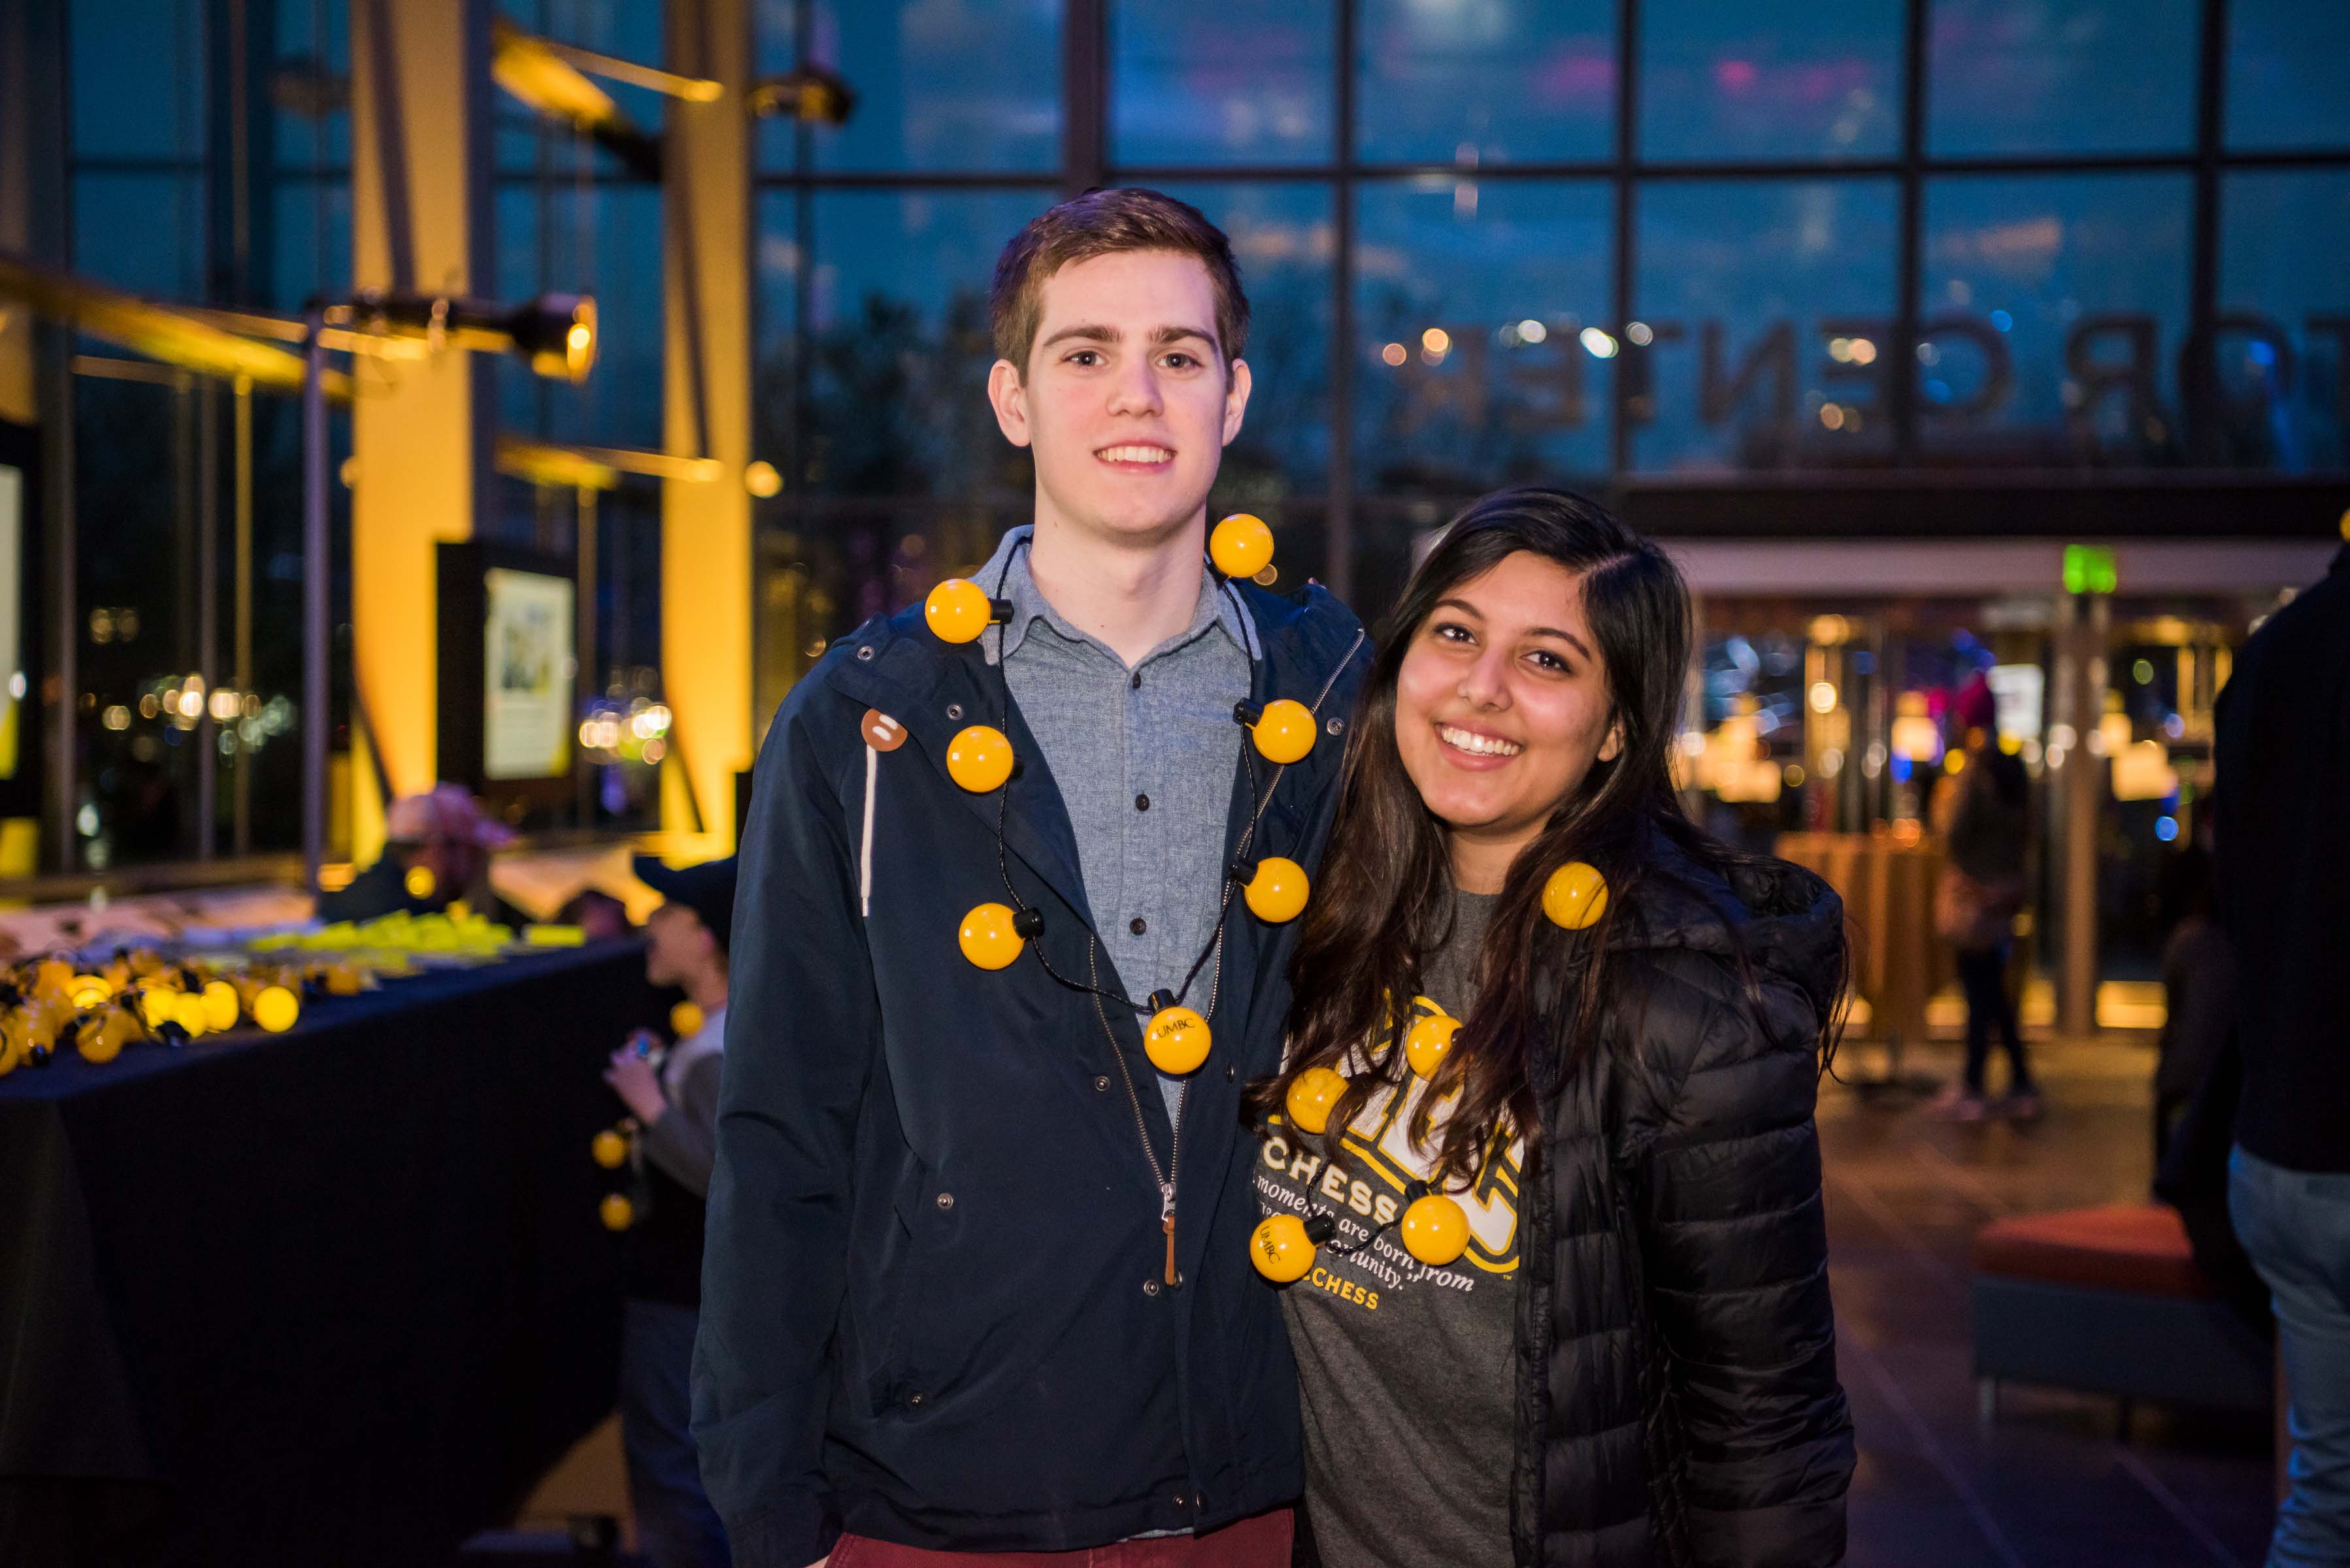 Two people pose together in lobby at Alumni reception